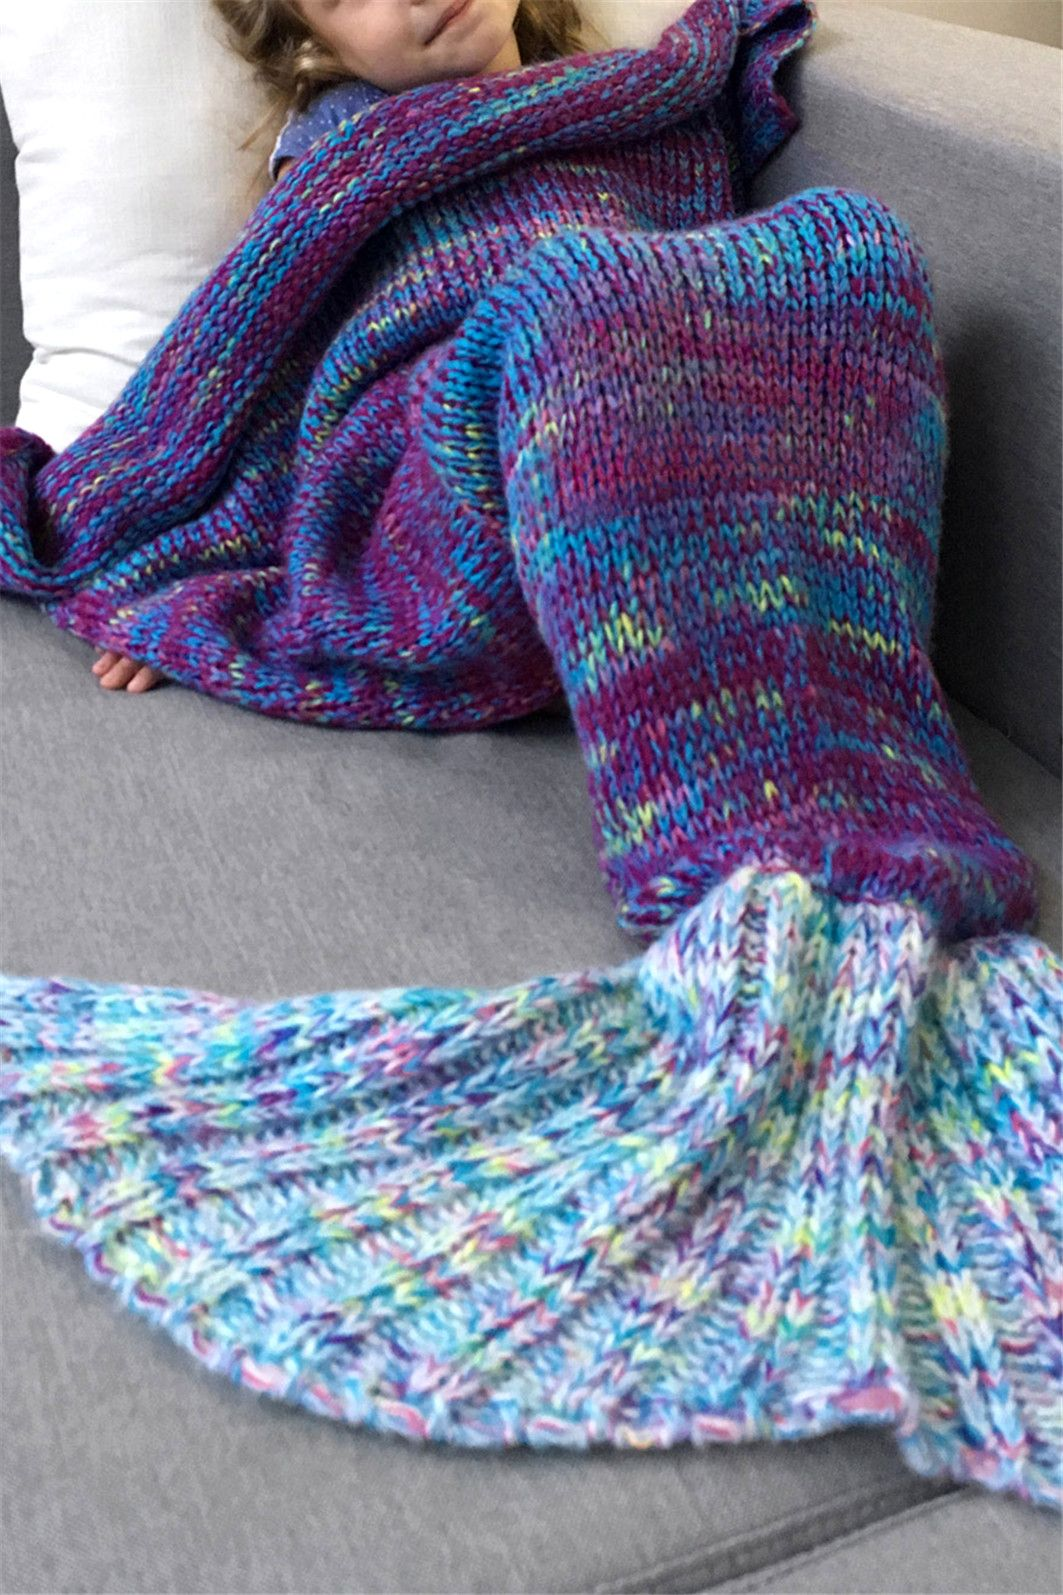 Warm and Soft Knitted Sofa Kids Mermaid Tail Blanket - Blue - M ... 92b47a19e